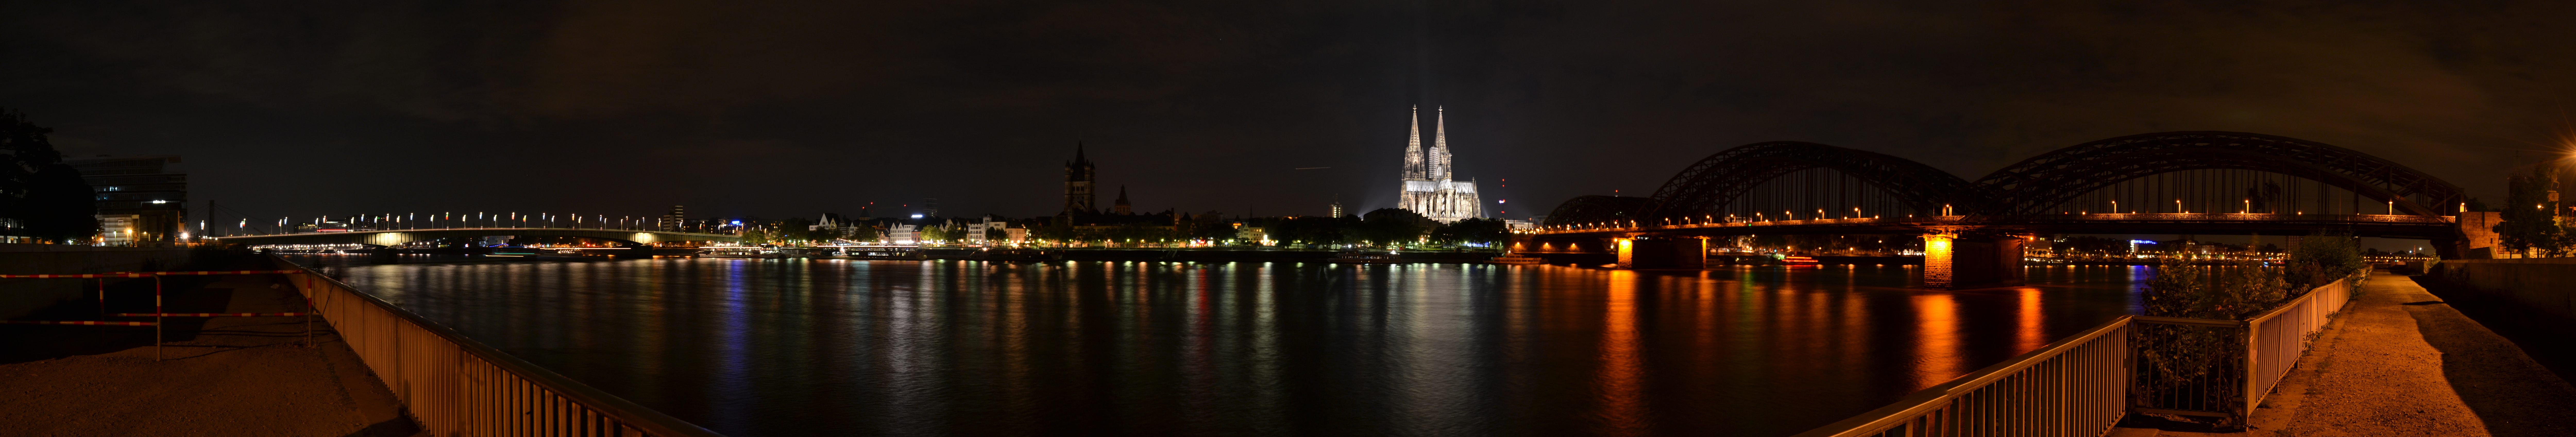 Cologne Night Panorama by Ocularis-Inferno